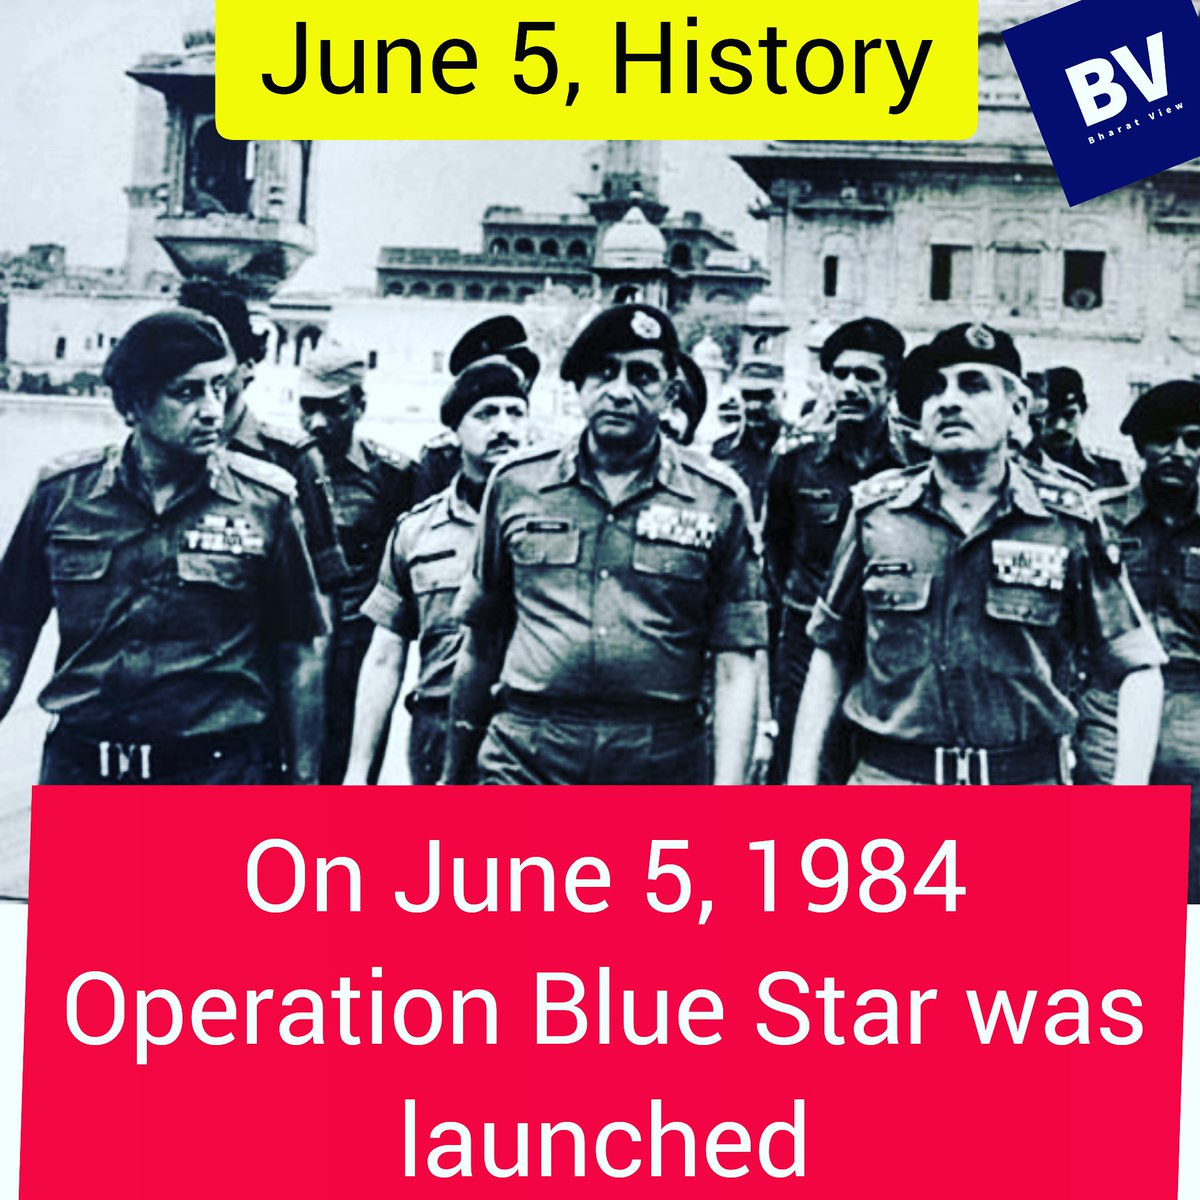 On June 5, 1984 the Operation Blue Star was launched..  #operationbluestar #surgicalstrike #khalistan #indianarmy #army #sikh #bharatview #bharatviewlive #news #newschannel #hindinews #youtubenews #media #socialmediapic.twitter.com/8qpUEd8QVt